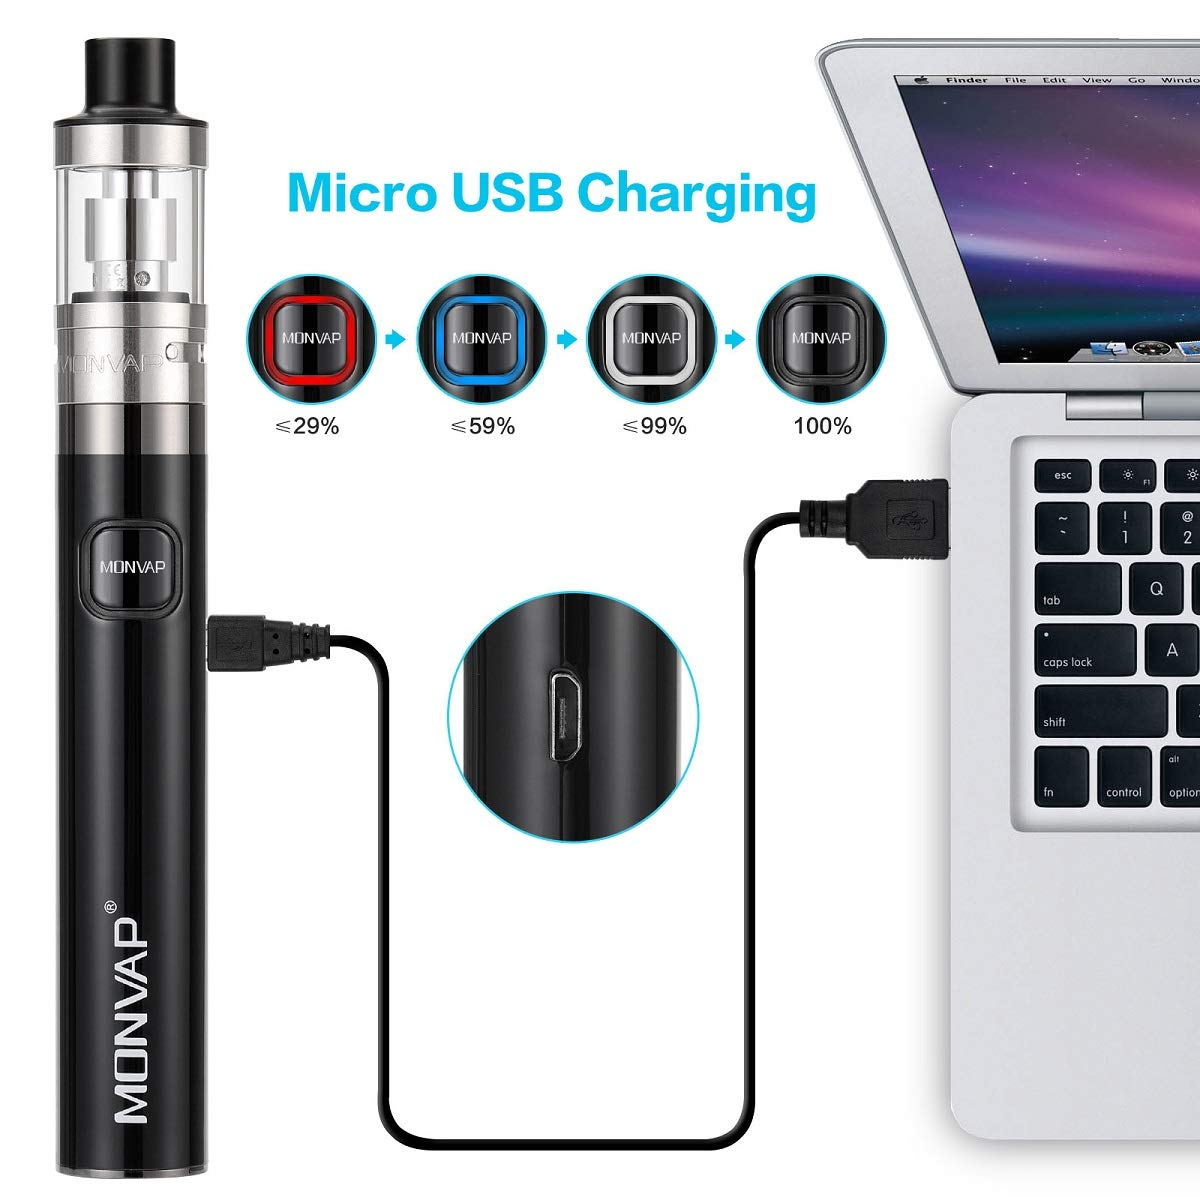 MONVAP 50W Vape Pen Starter Kit, E Cigarettes Starter Kit With E-liquid, 2.0ml Top Refill Tank, 0.5ohm Coil, 1500mAh E-Cig Batteries, 5 x 10ml Vape Juice No Nicotine 0mg